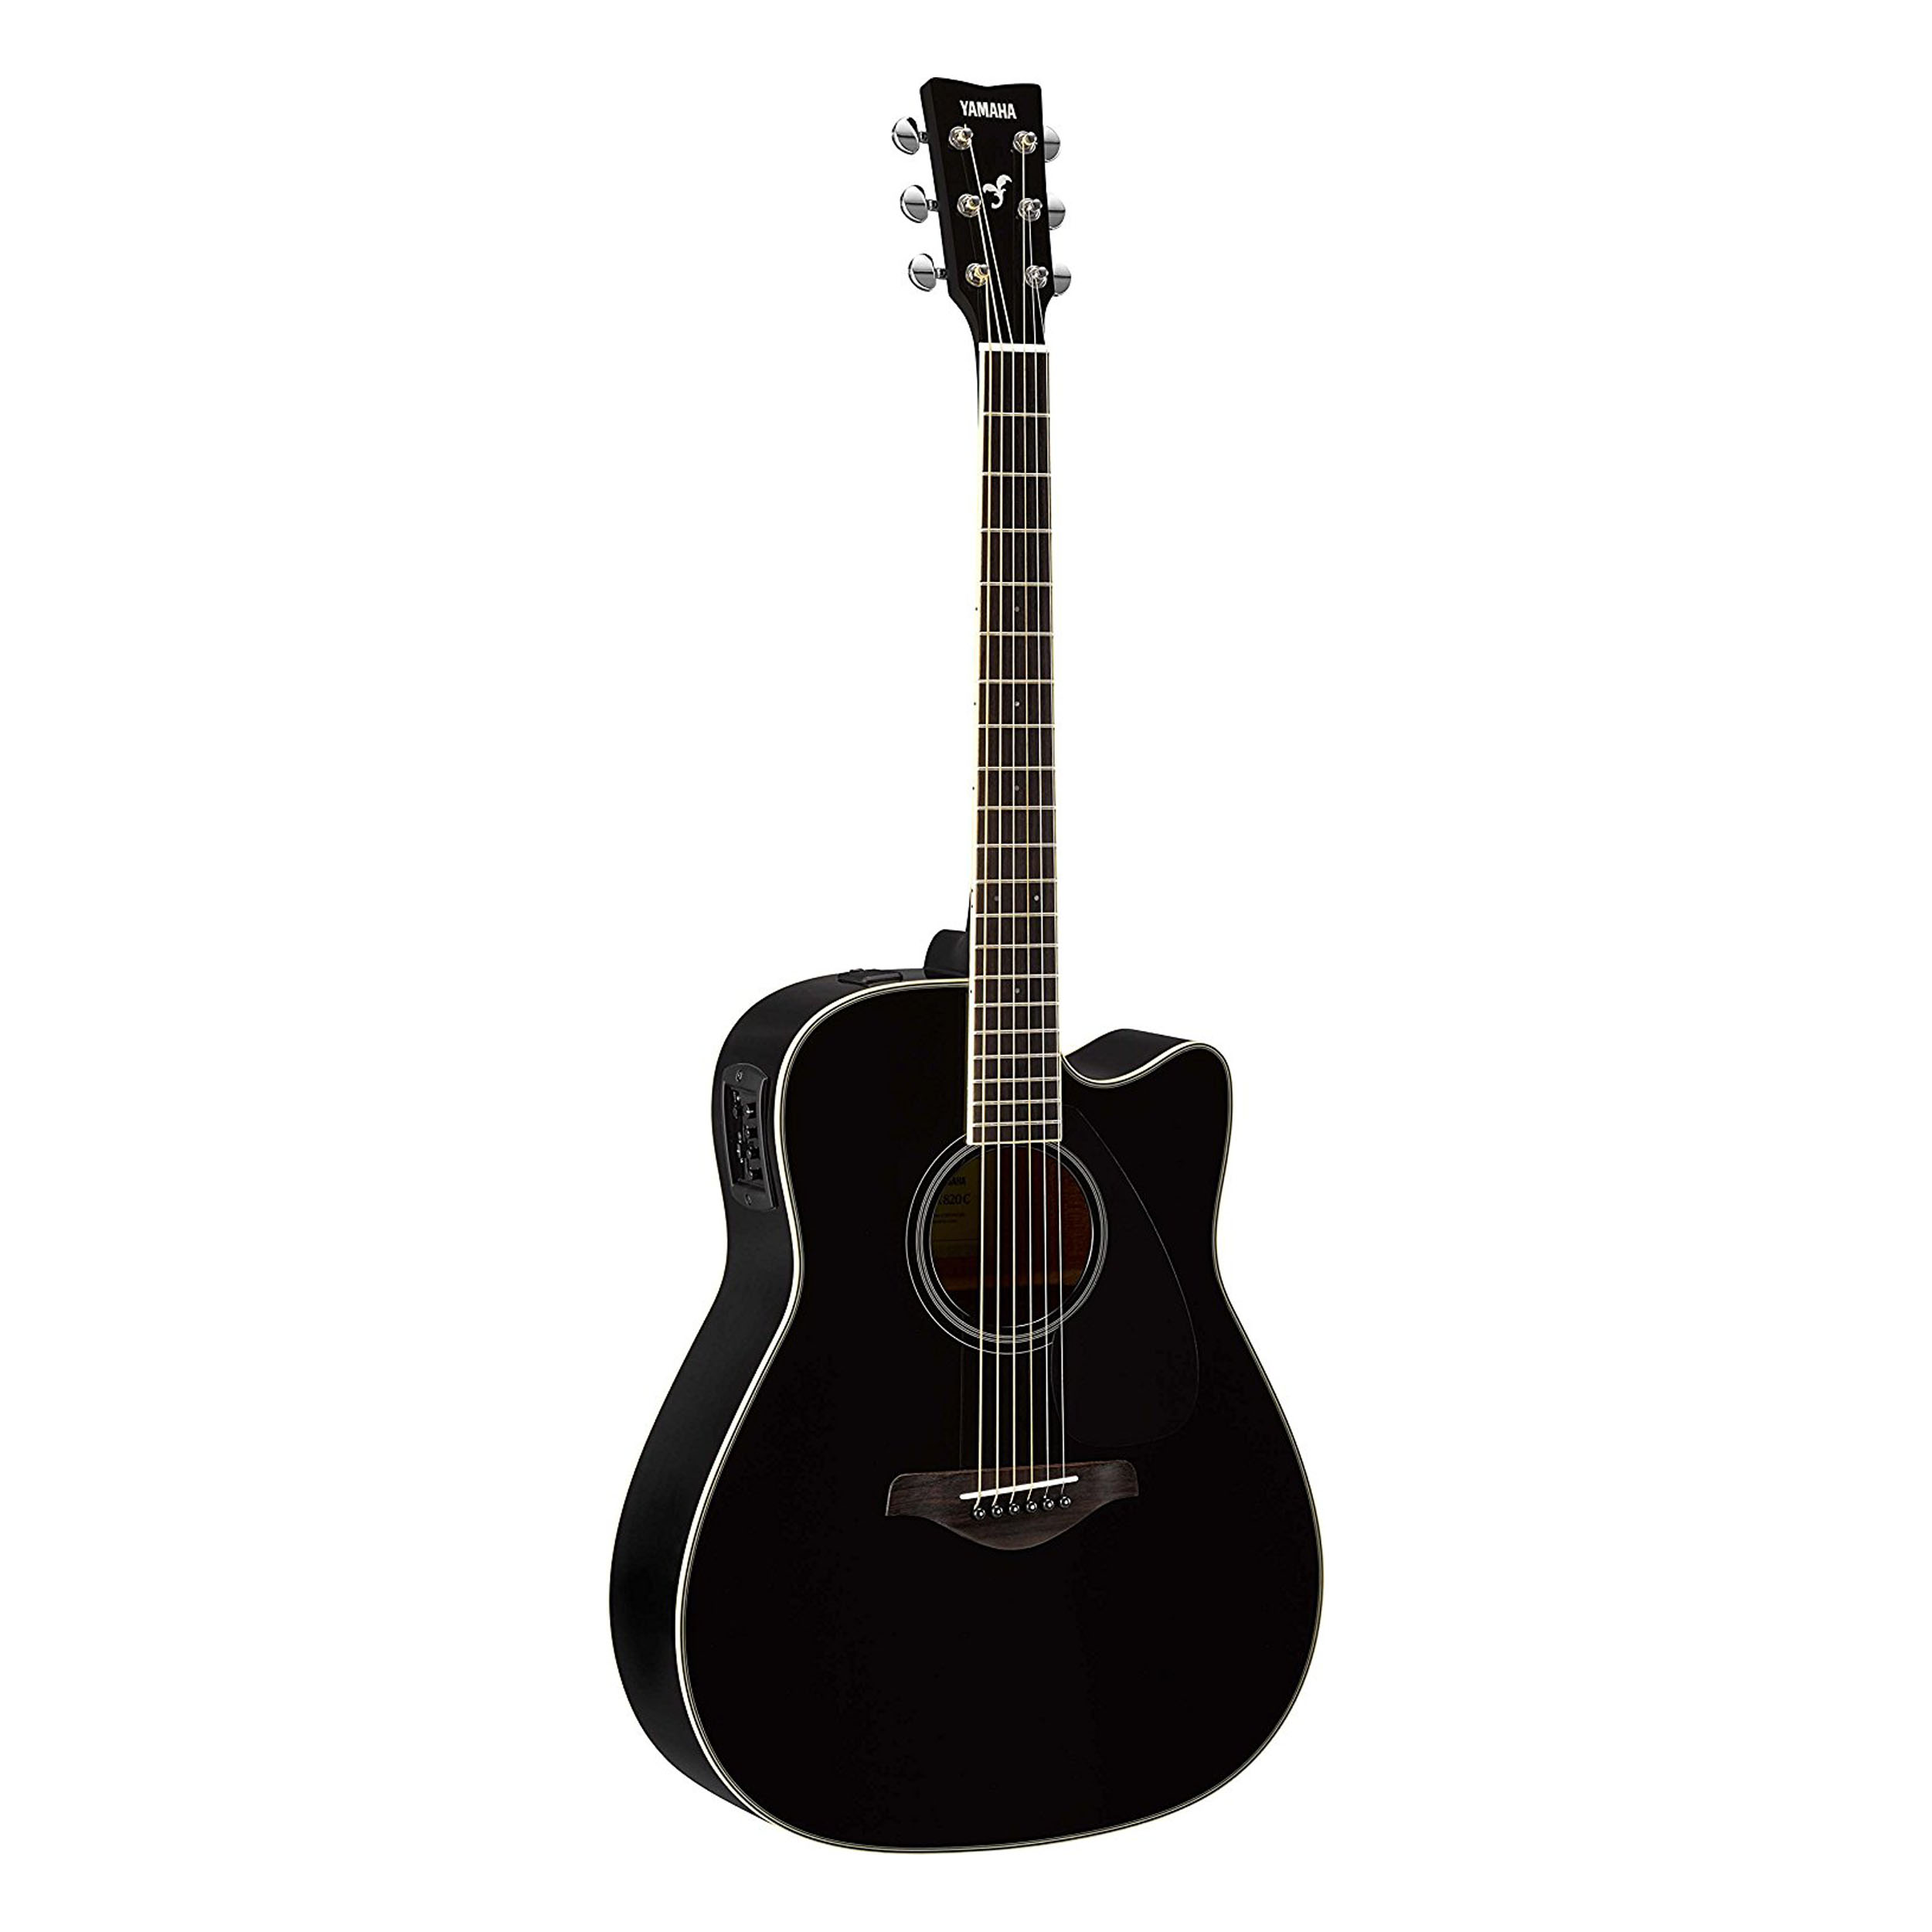 Yamaha fgx800c acoustic electric guitar in black ebay for Yamaha classic guitar